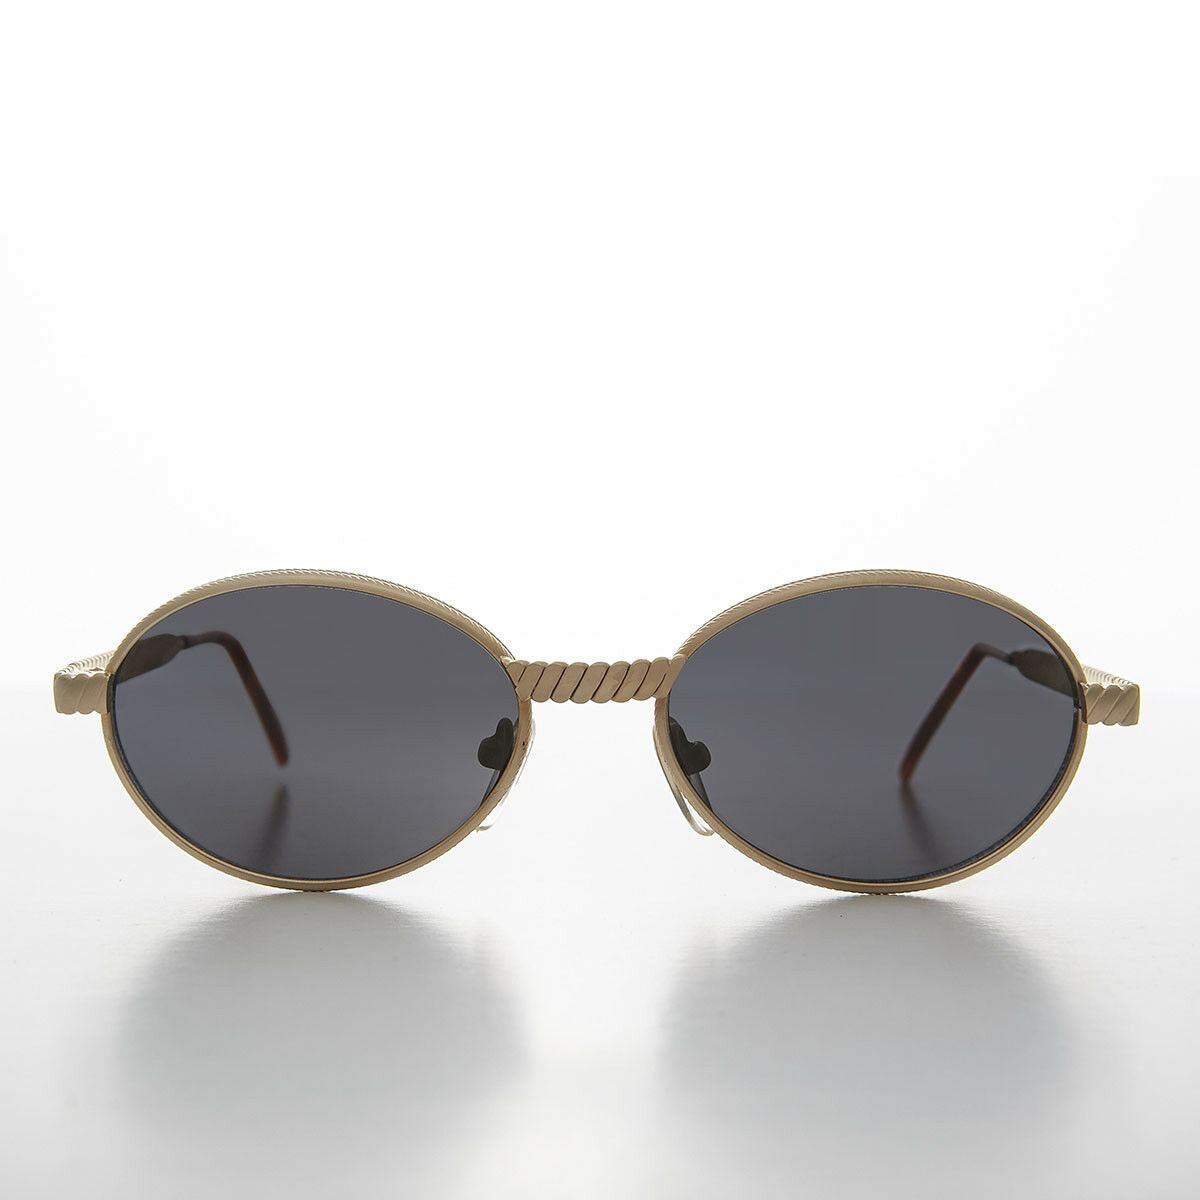 Gold Oval 90s Vintage Sunglass with Metal Rope Effect Frame - Snuff